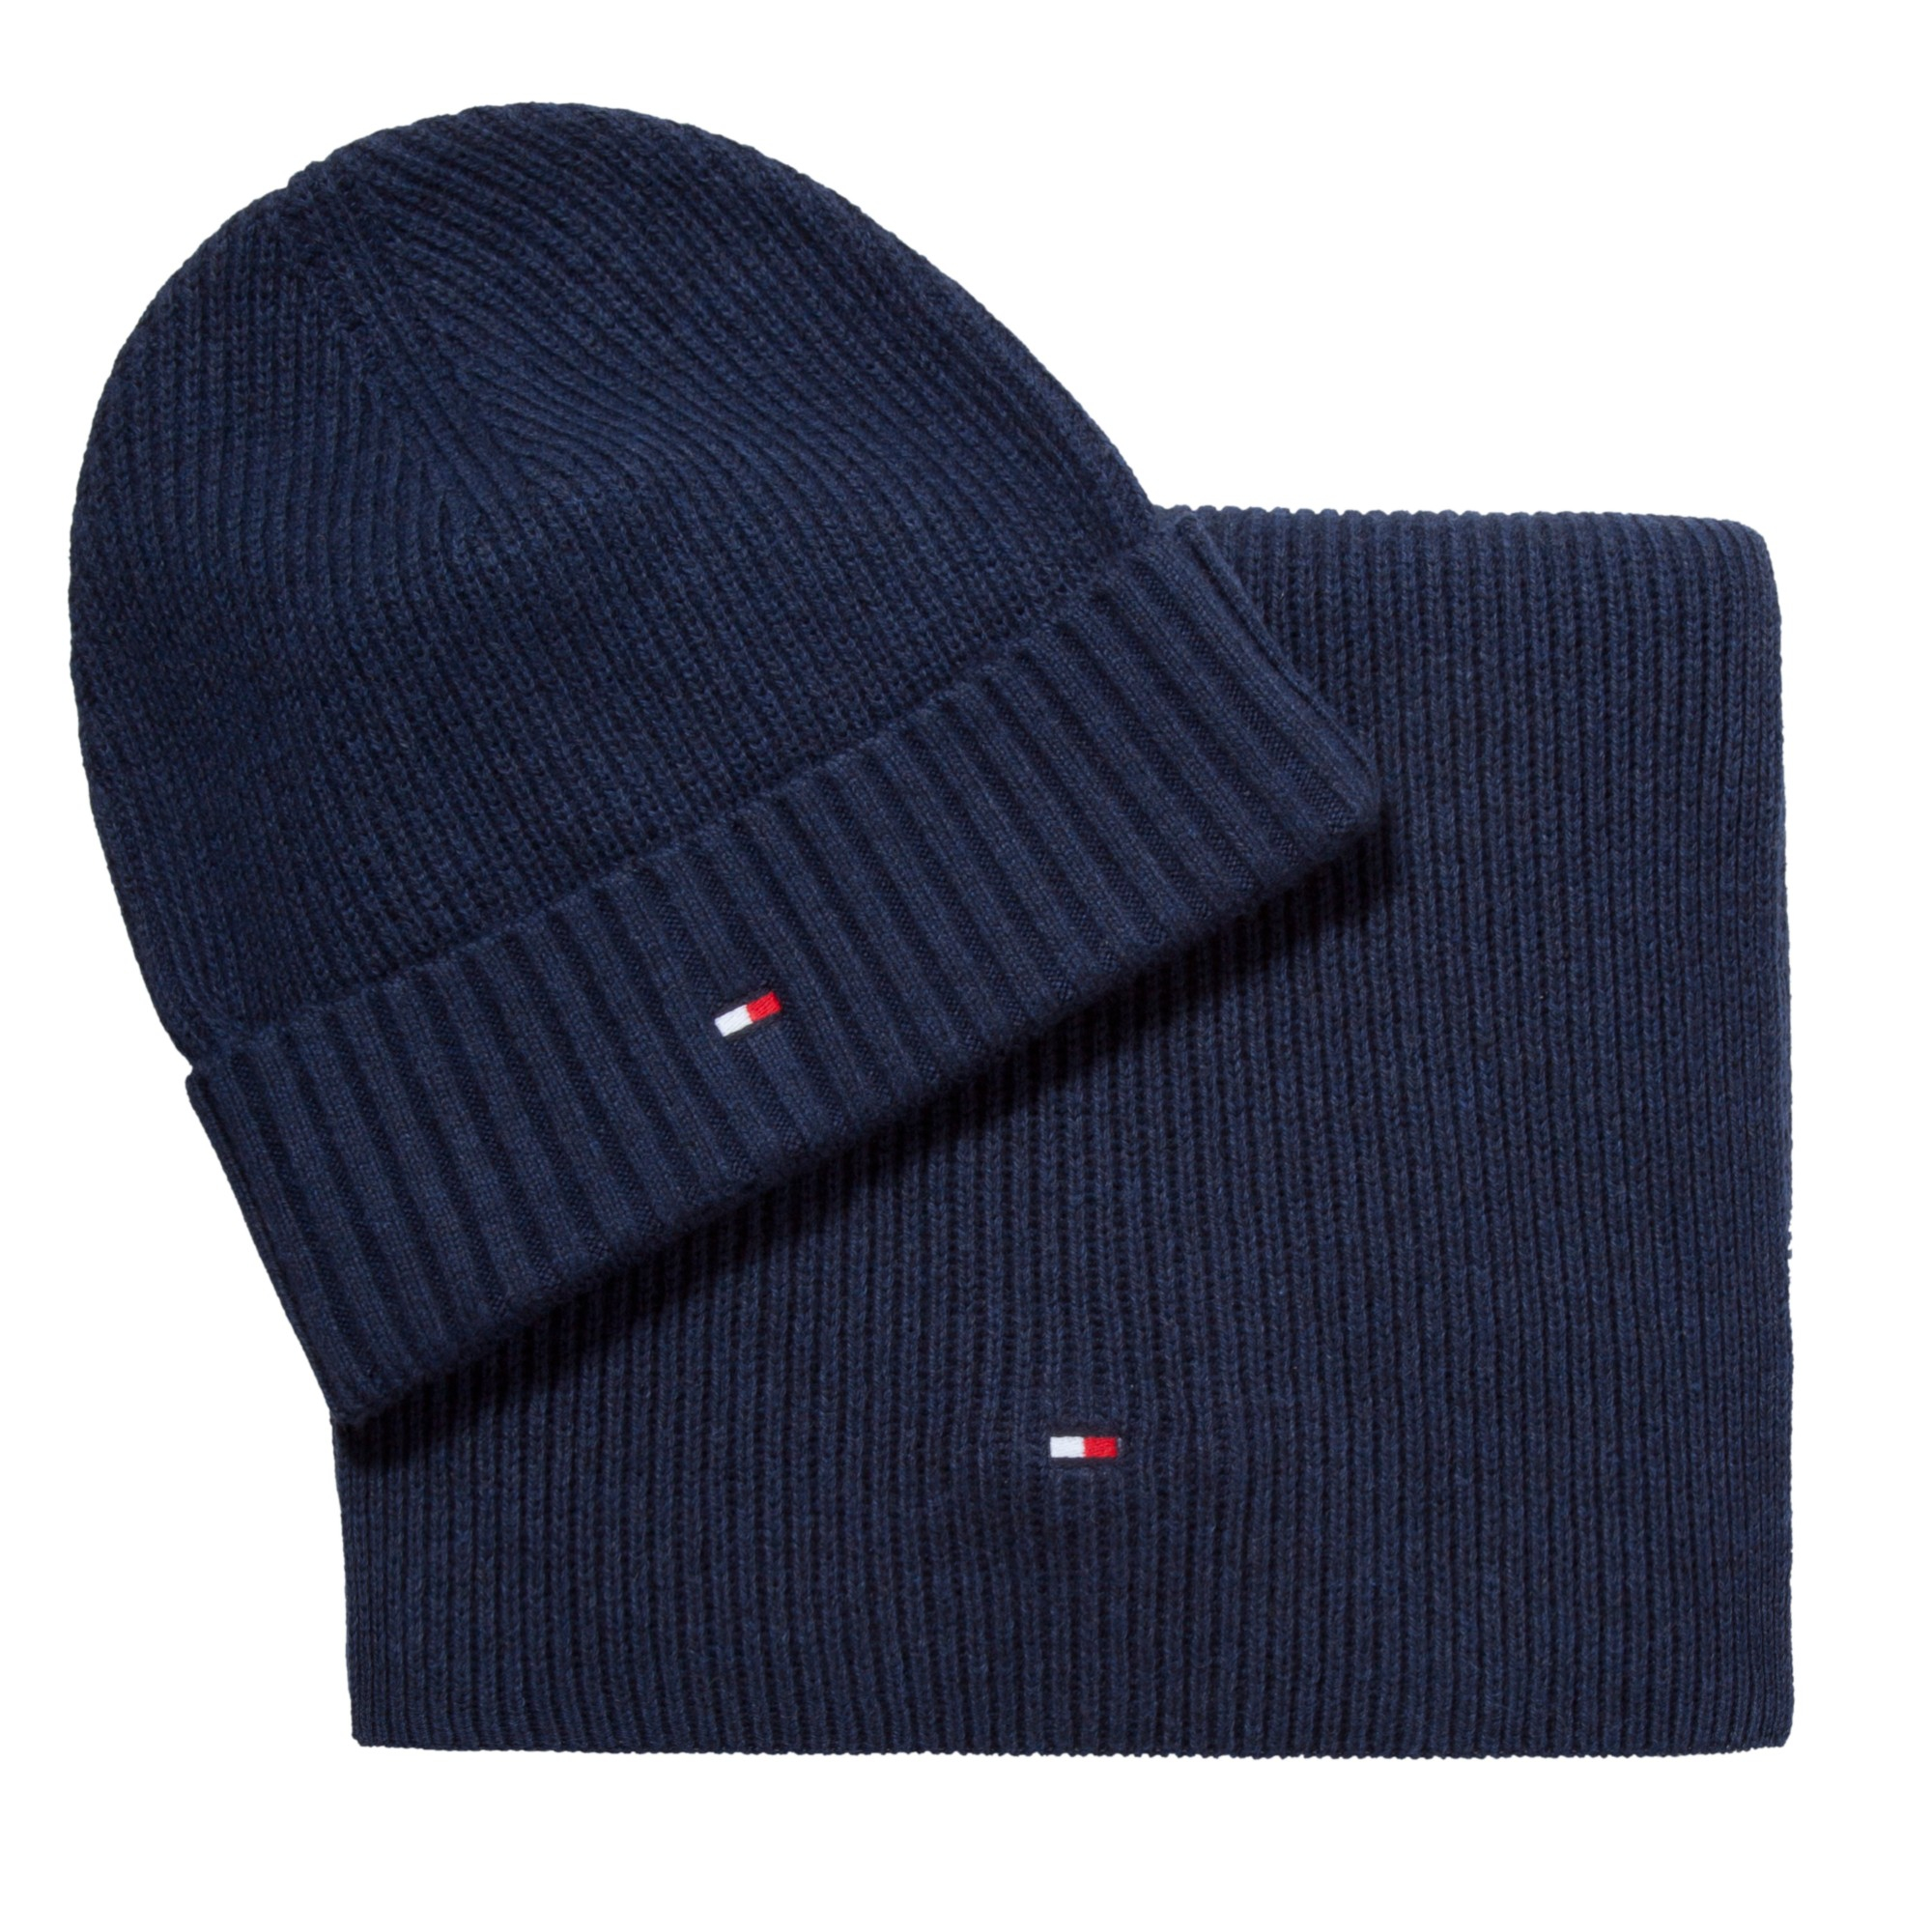 Tommy Hilfiger Hat And Scarf Set in Blue for Men - Lyst 7eb7799975c